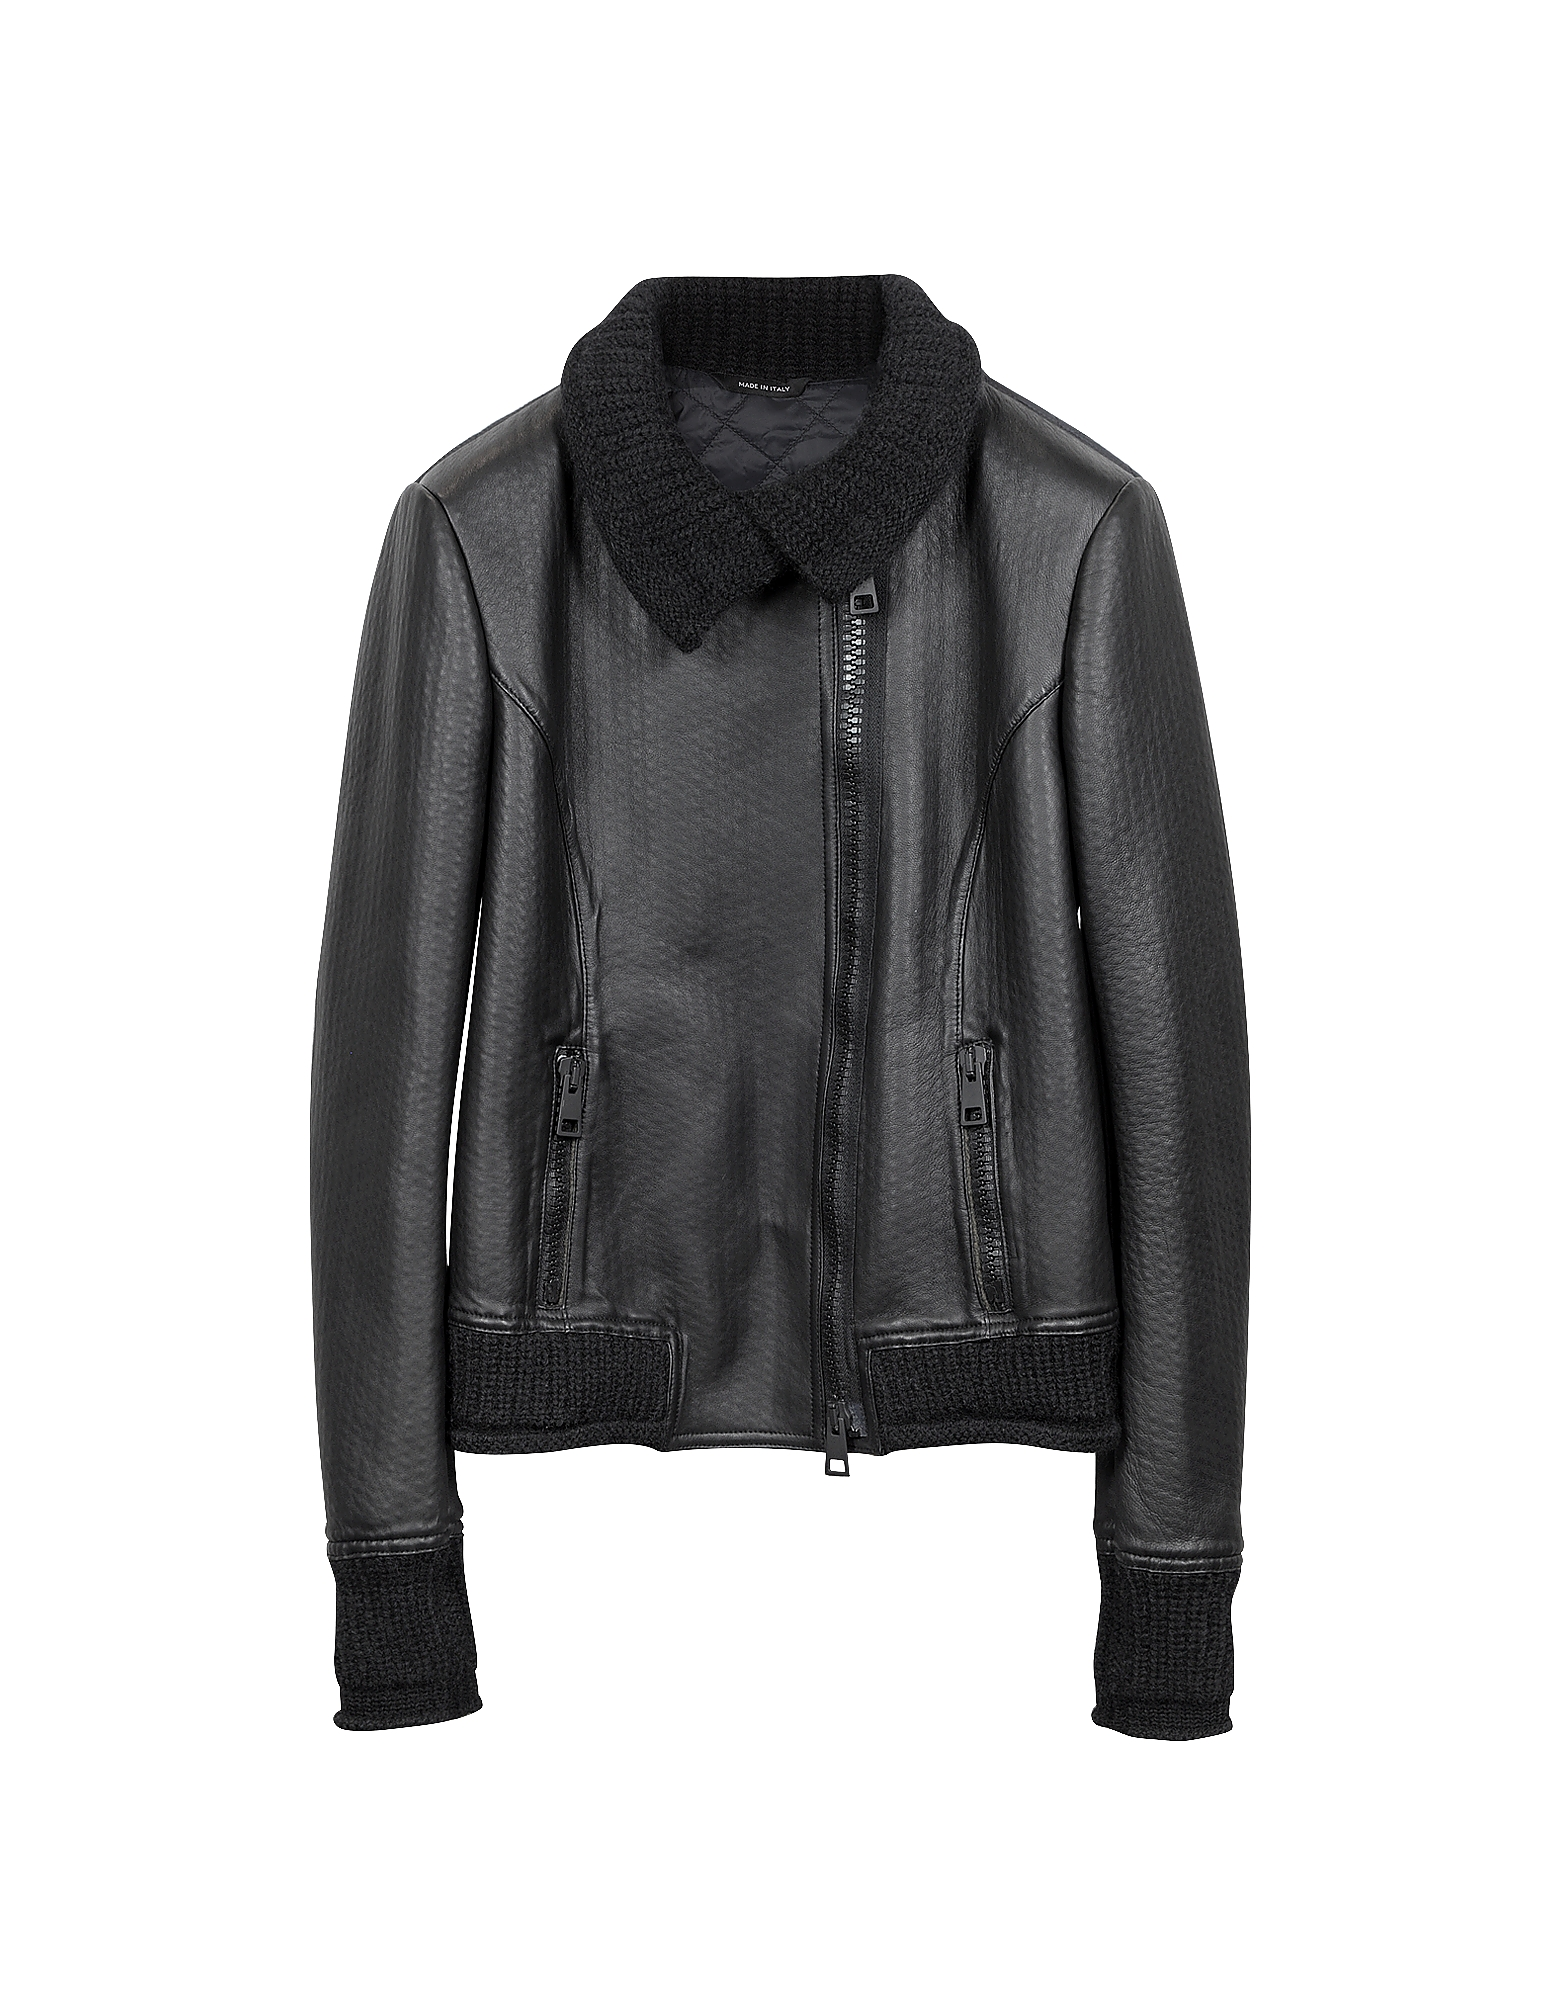 Forzieri Leather Jackets, Women's Black Leather And Mix Media Jacket